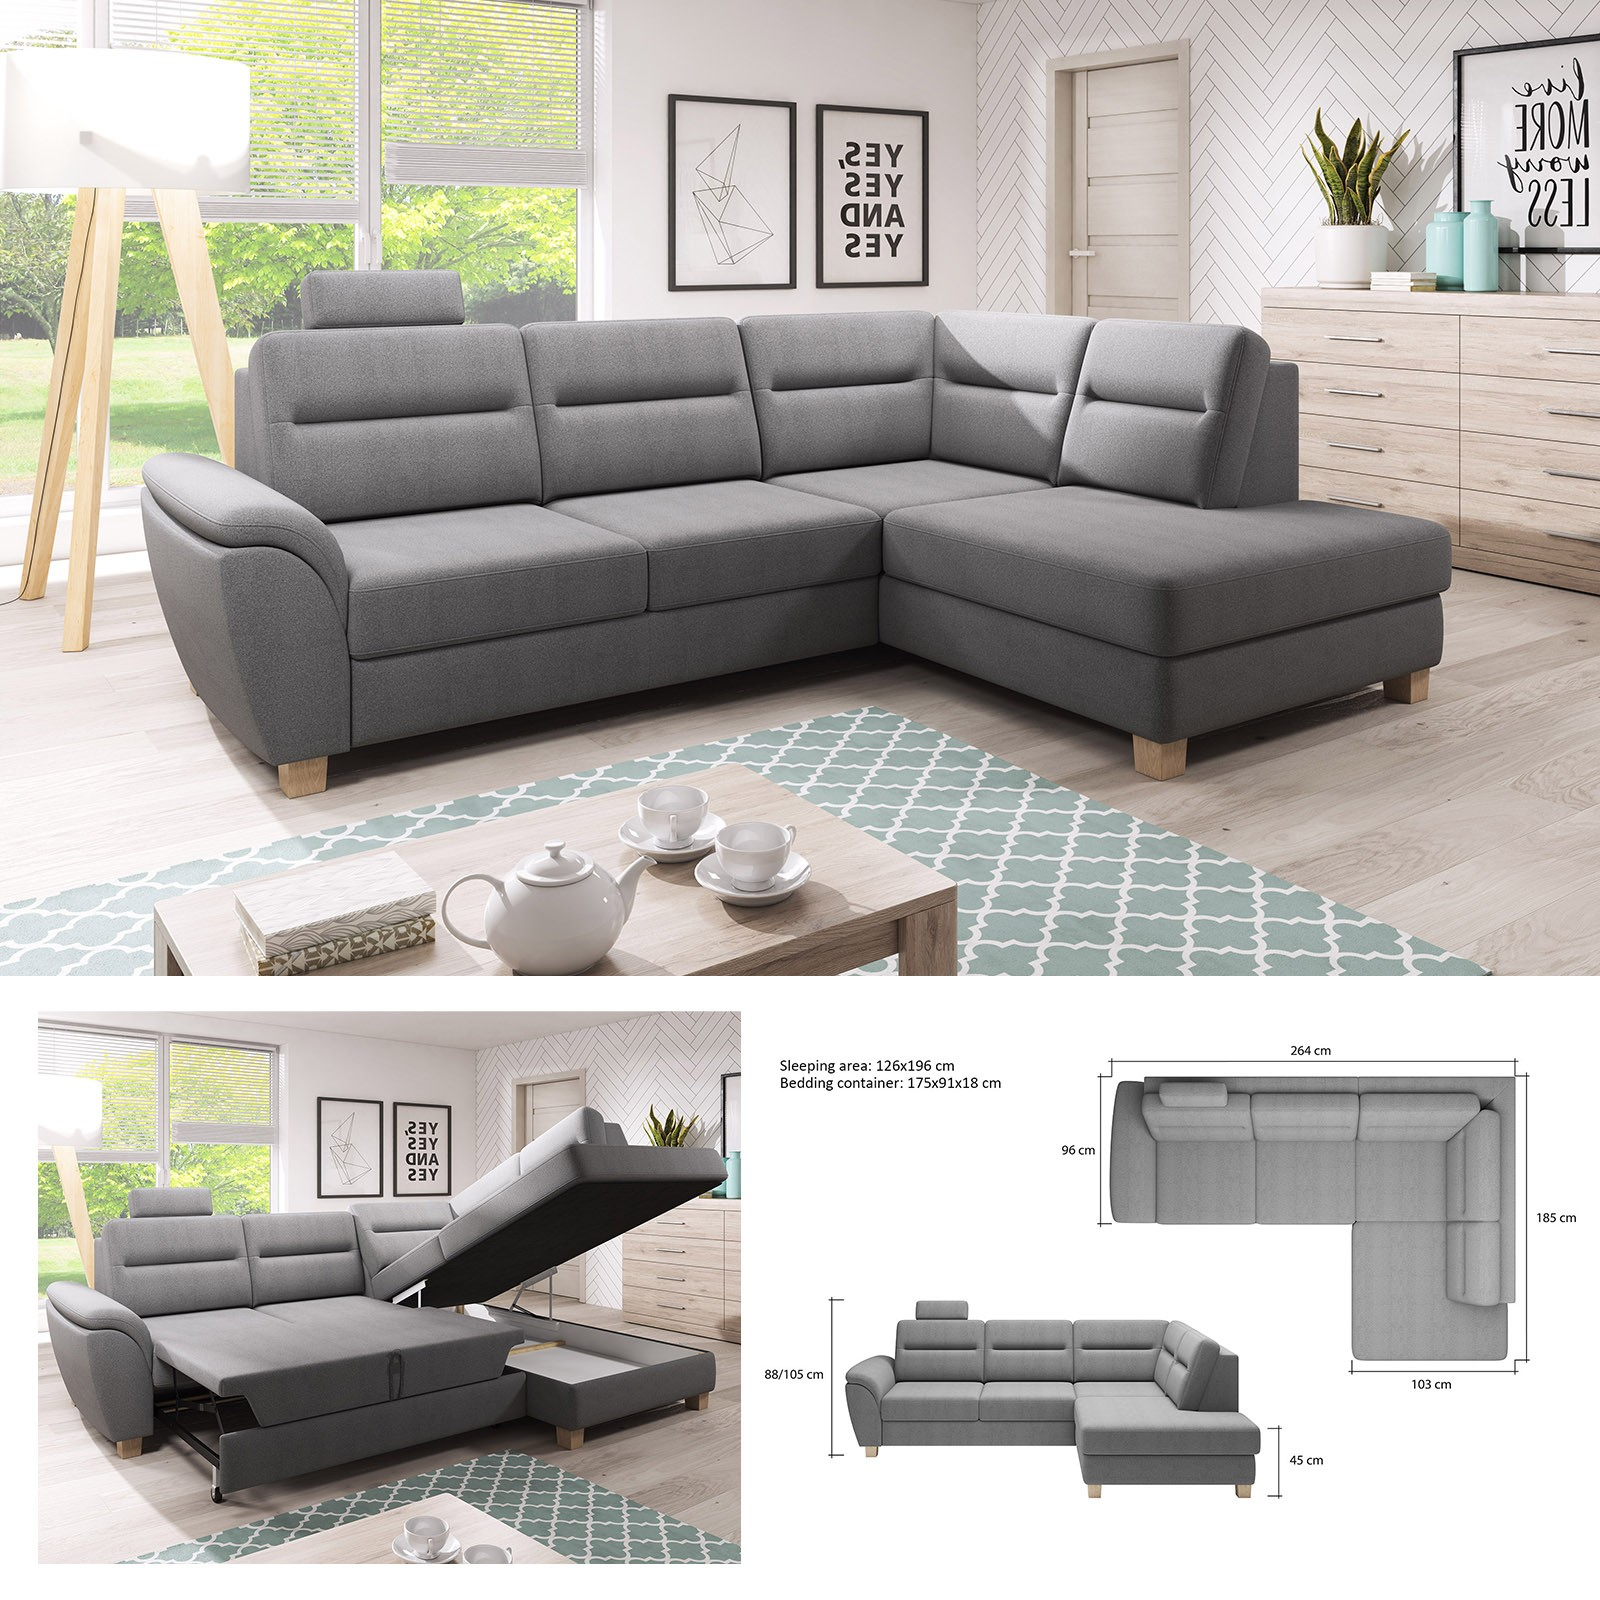 huge discount 60934 16819 Details about BMF 'SANTI' MODERN Corner Sofa Bed Storage Wooden Legs Faux  Leather/Fabric RF